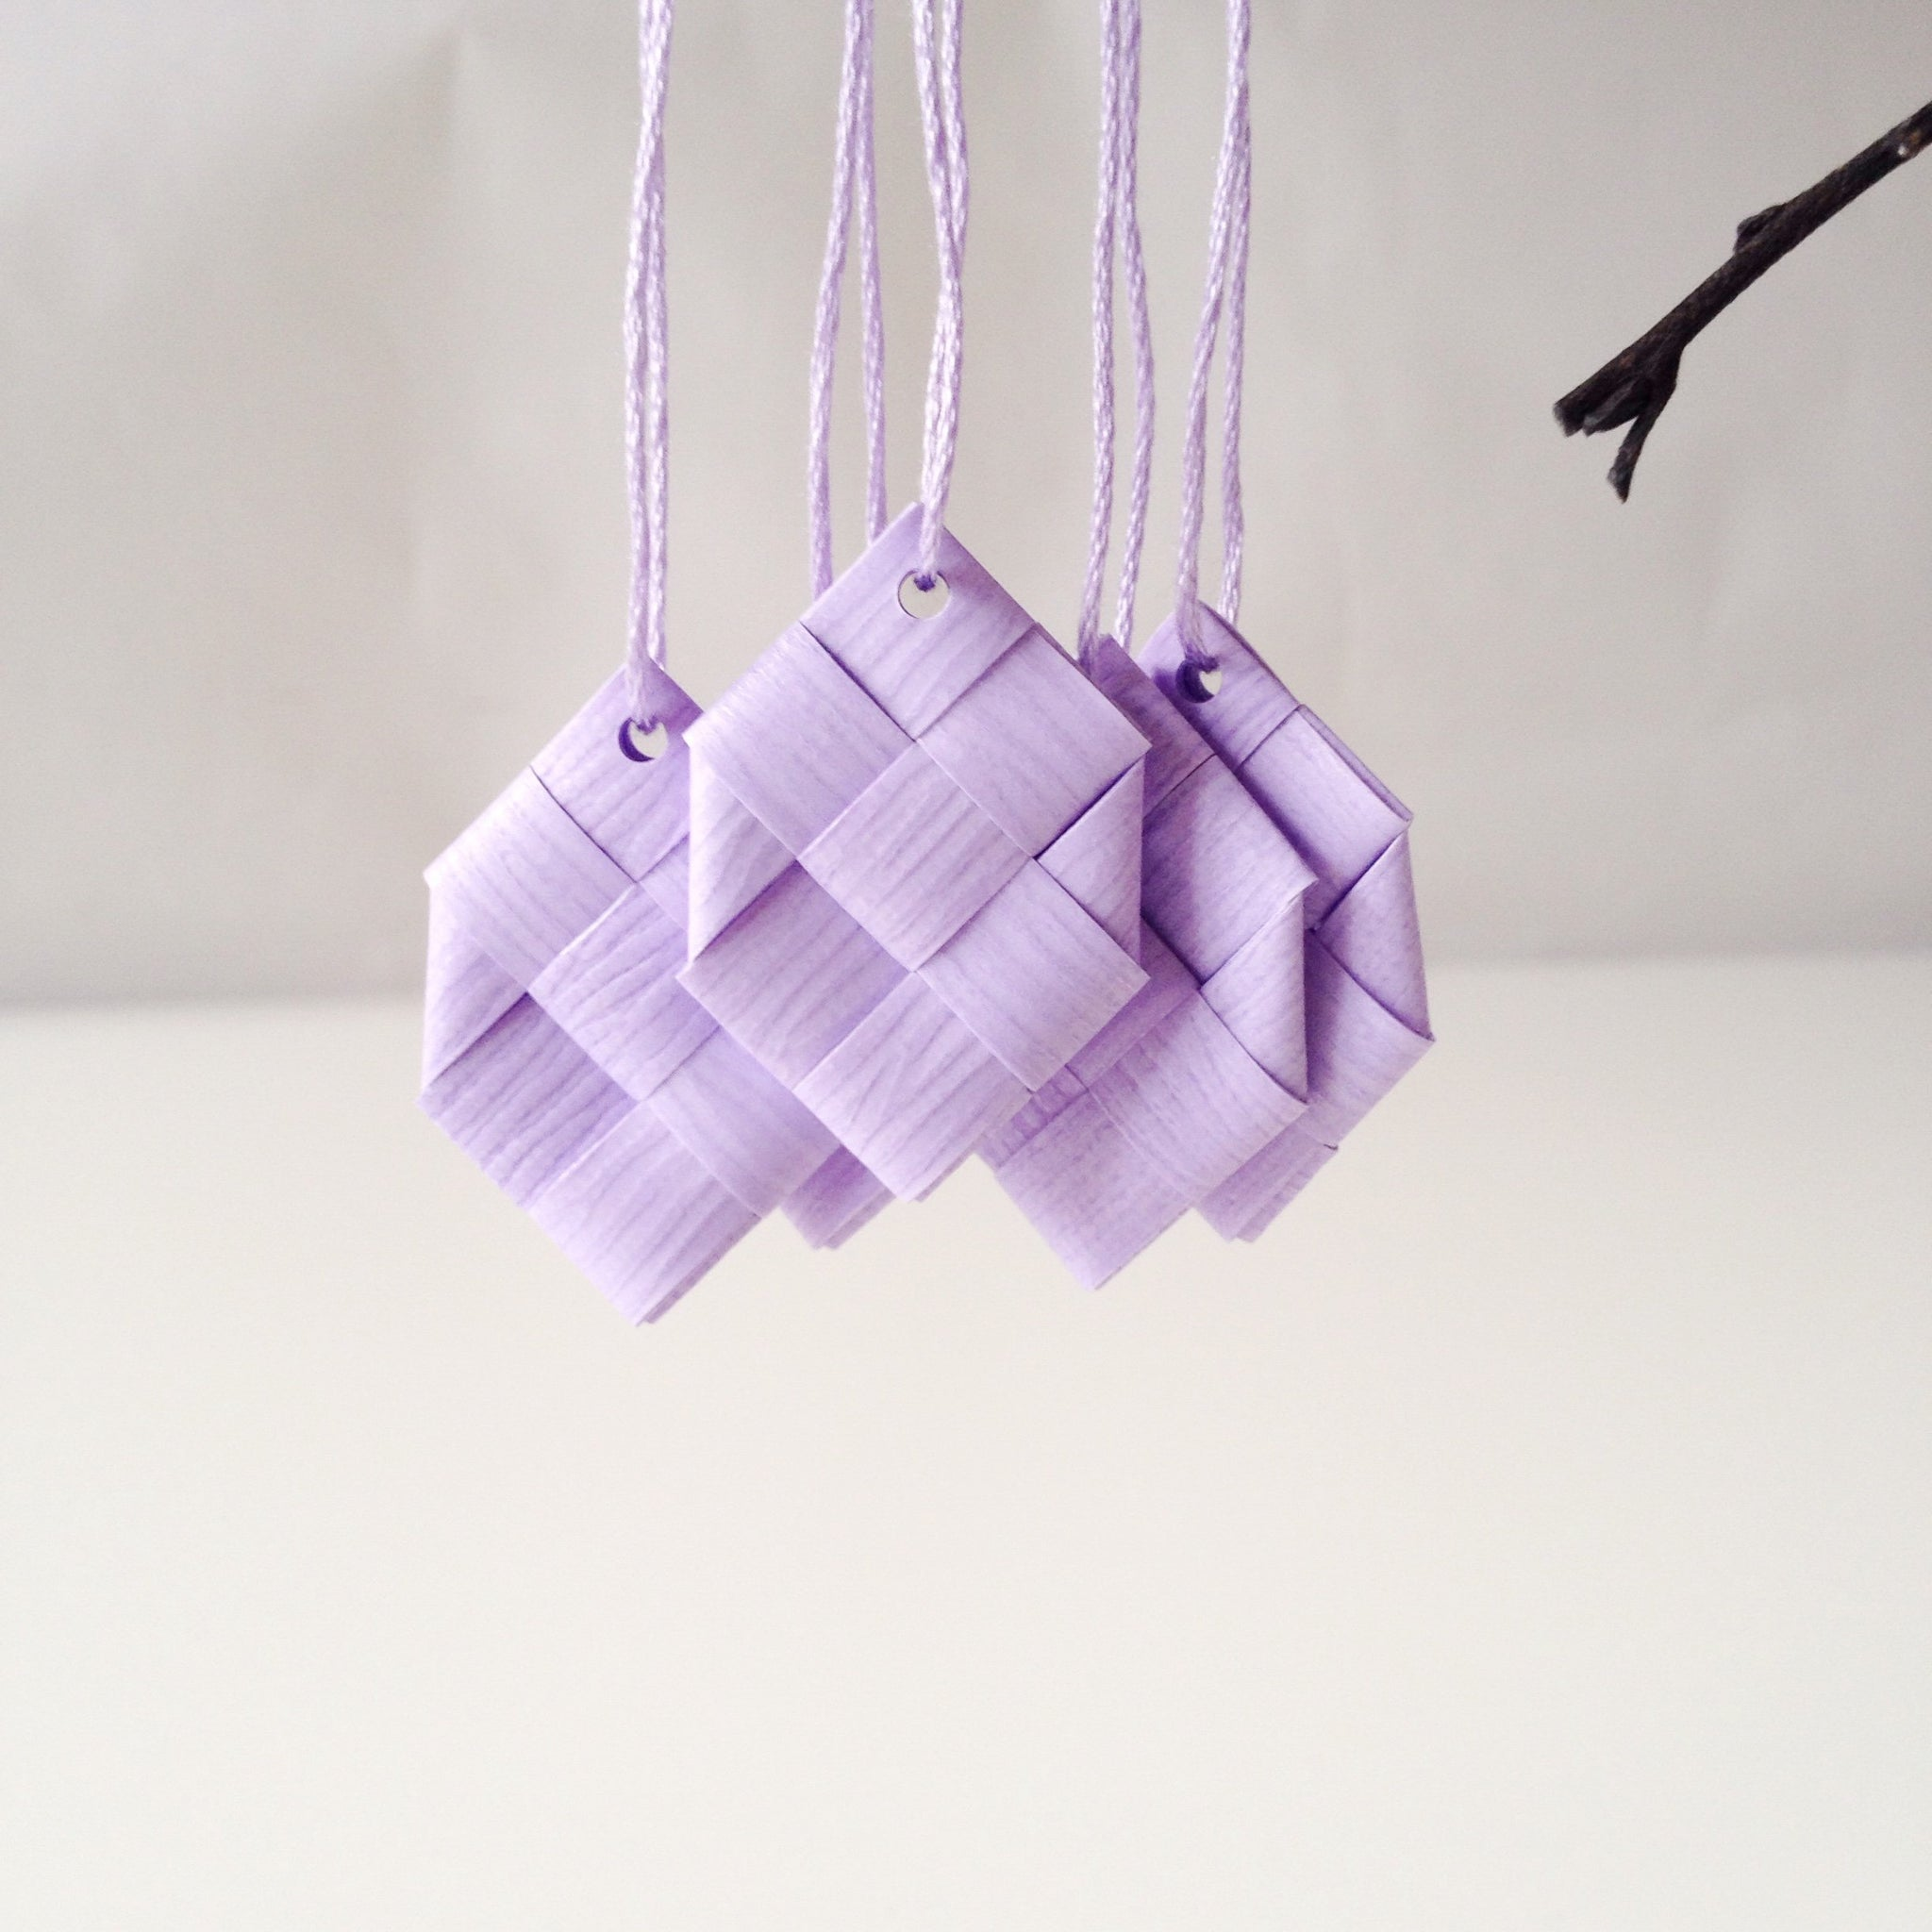 Lilas prisms S - 5 pcs